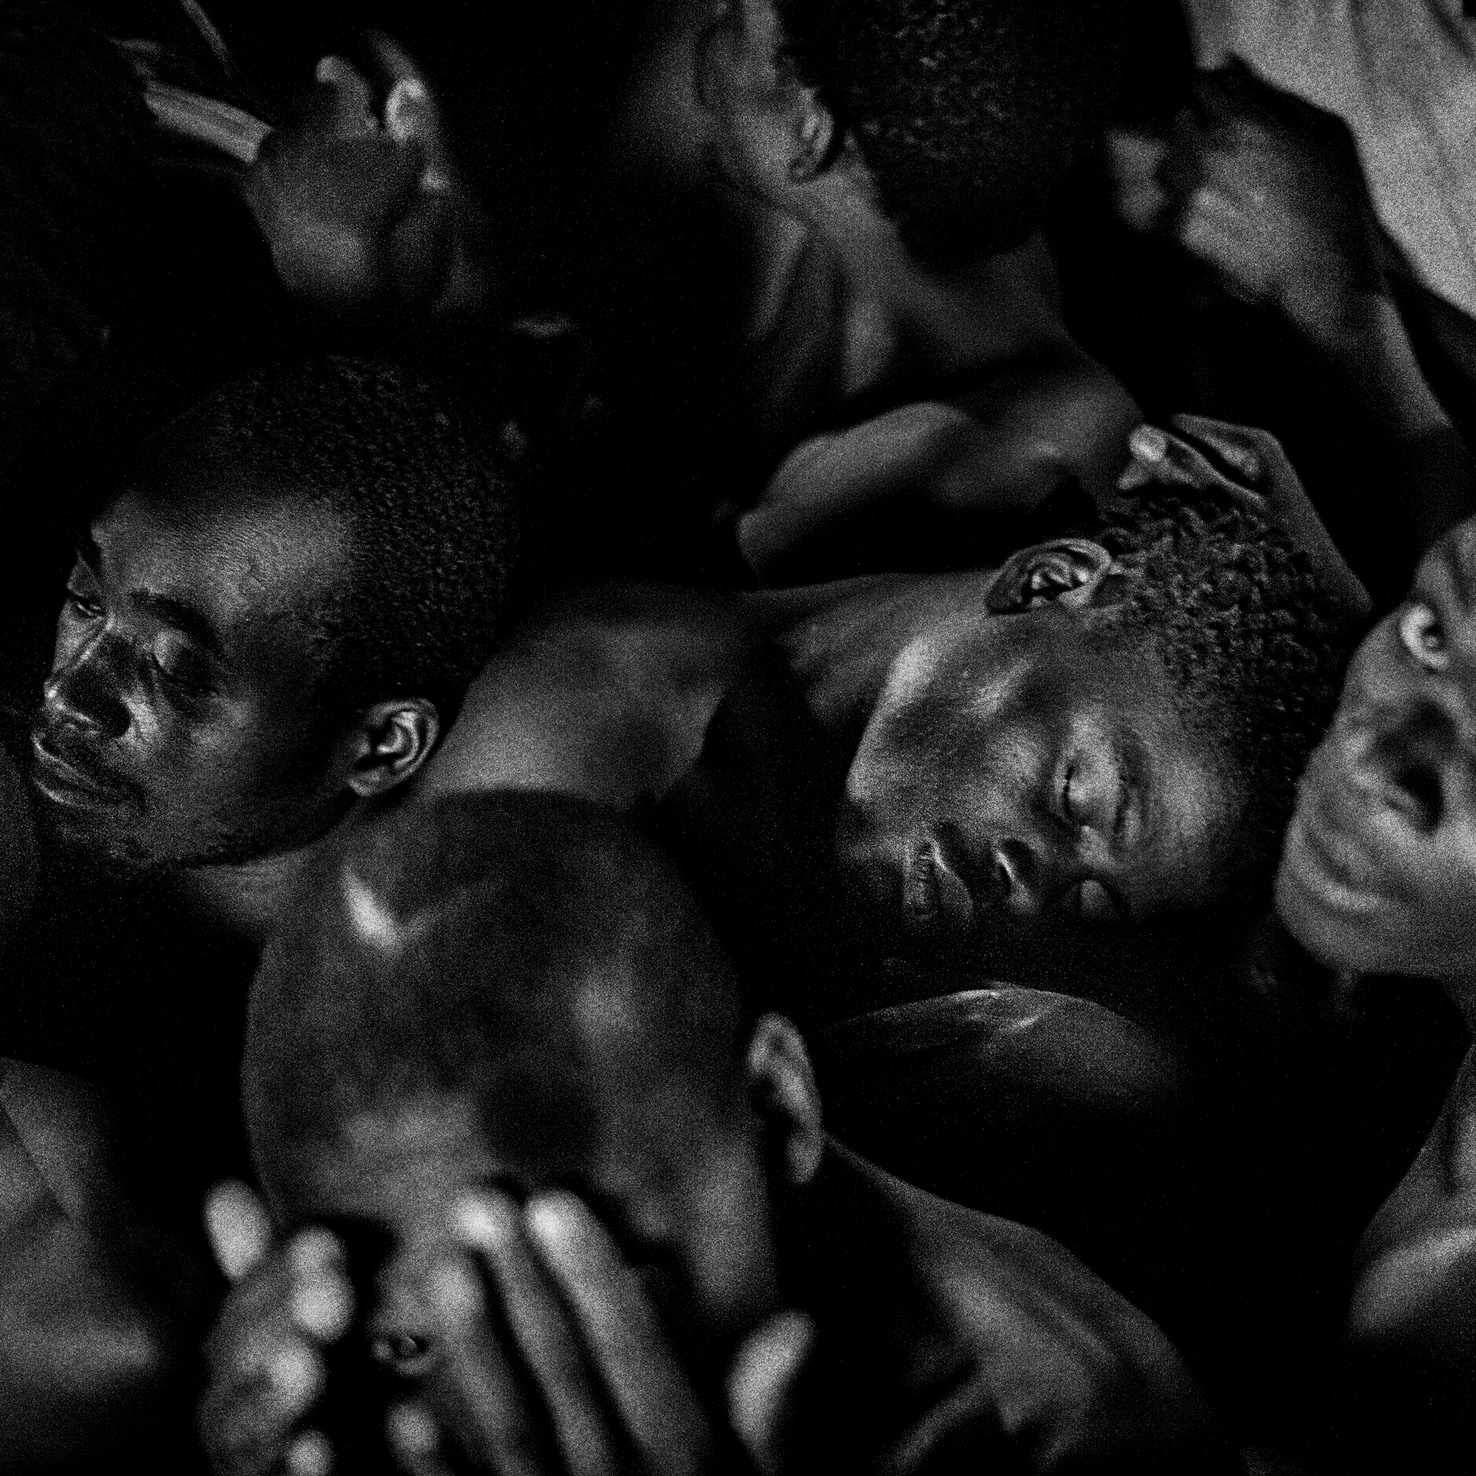 MALAWI. Blantyre. May 26th, 2015. Chichiri Prison. Prisoners sit in an overcrowded cell (cell 5) during the night, struggling to find some sleep.  Overcrowding represent the most critical problem of Malawian jails. Chichiri Prison was built to house 800 prisoners instead of the 1800 currently detained in.    According to medical statistics the cell 5, one of the most overcrowded, is the cell in which there are more case of viral transmissions (Tuberculosis, Hepatitis, Malaria, HIV) as well as the highest percentage of other diseases related to the critical hygienically conditions (Scabies, skin infections, rash).  © Luca Sola 2015